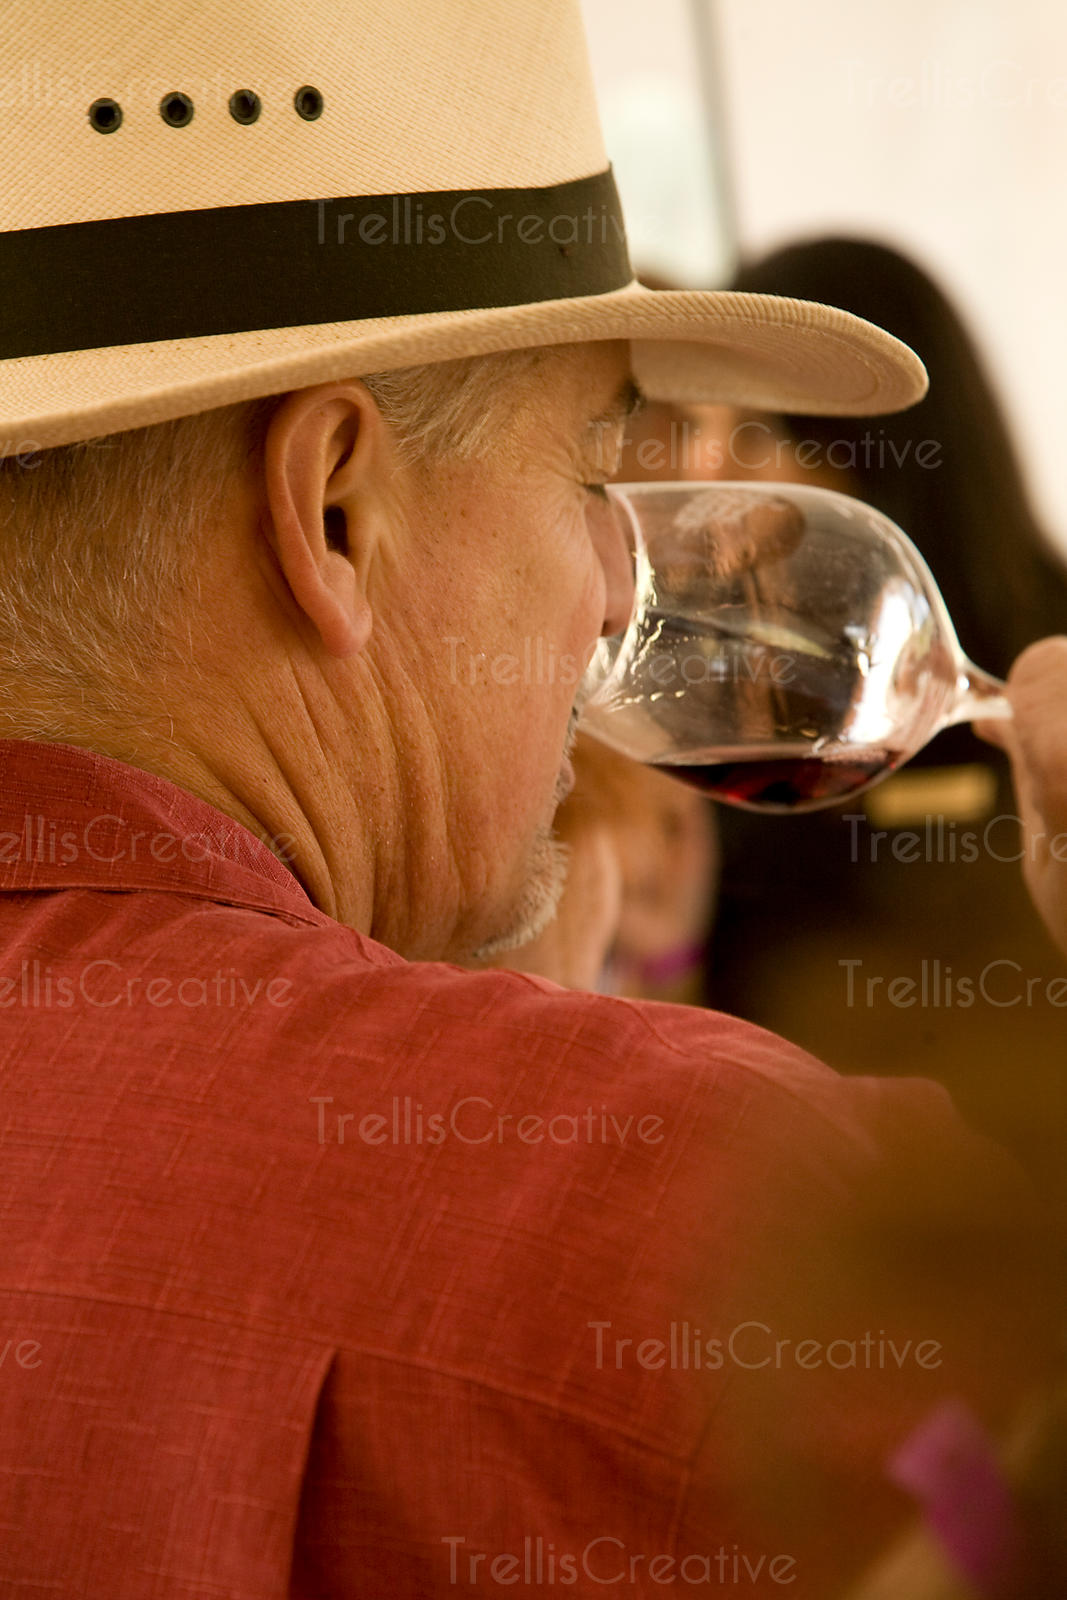 A man in a hat smells the aromas in a glass of red wine